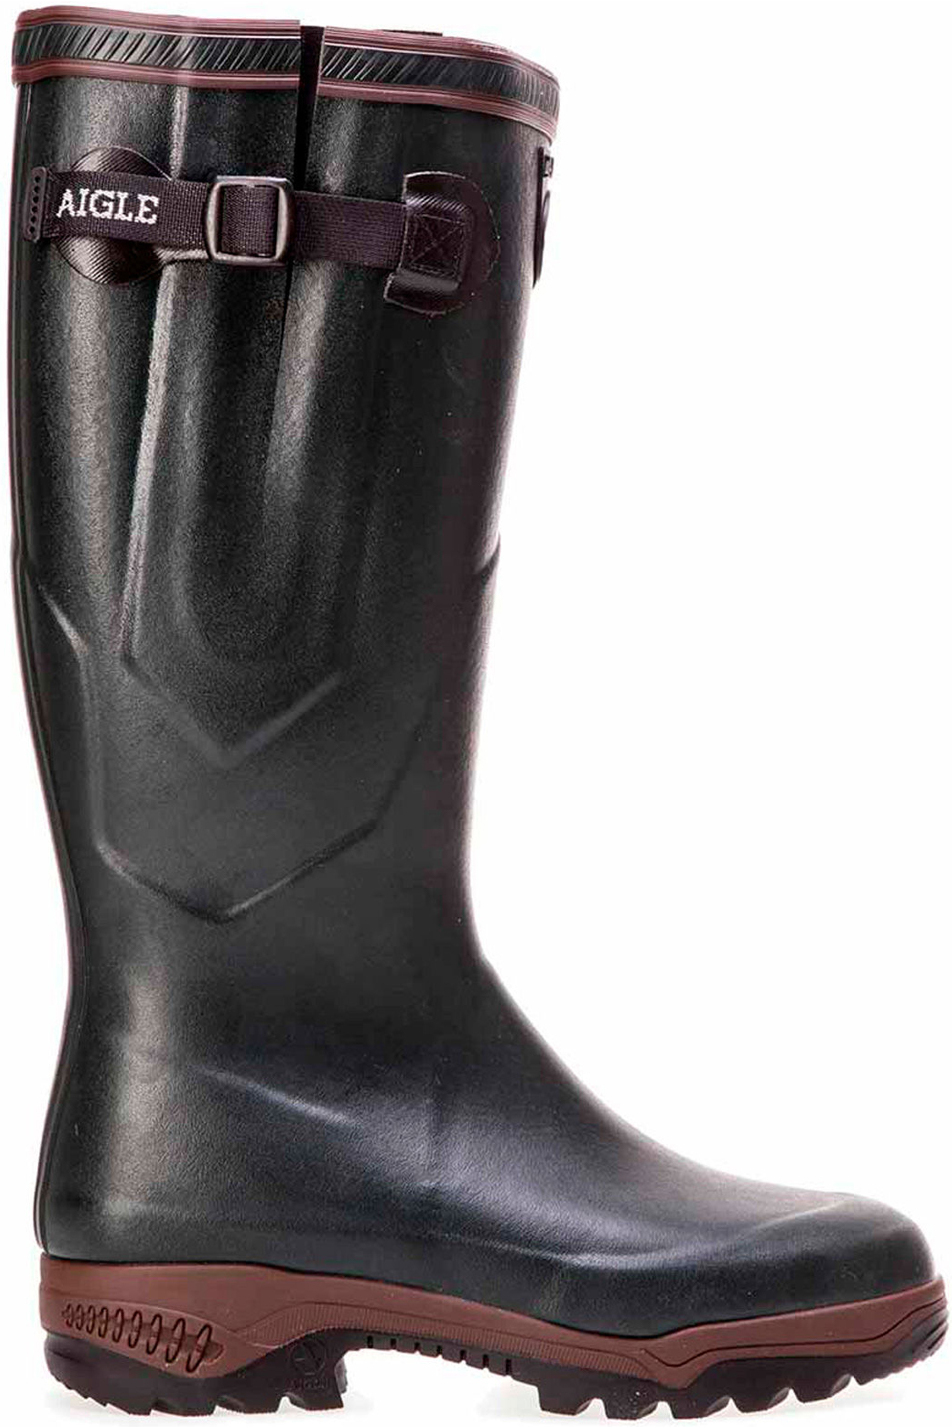 Aigle Mens Boots Parcours 2 ISO Anti Fatigue Hunting Bronze   Country    Boots   Peg and ThreadDrillshed   Peg & Thread